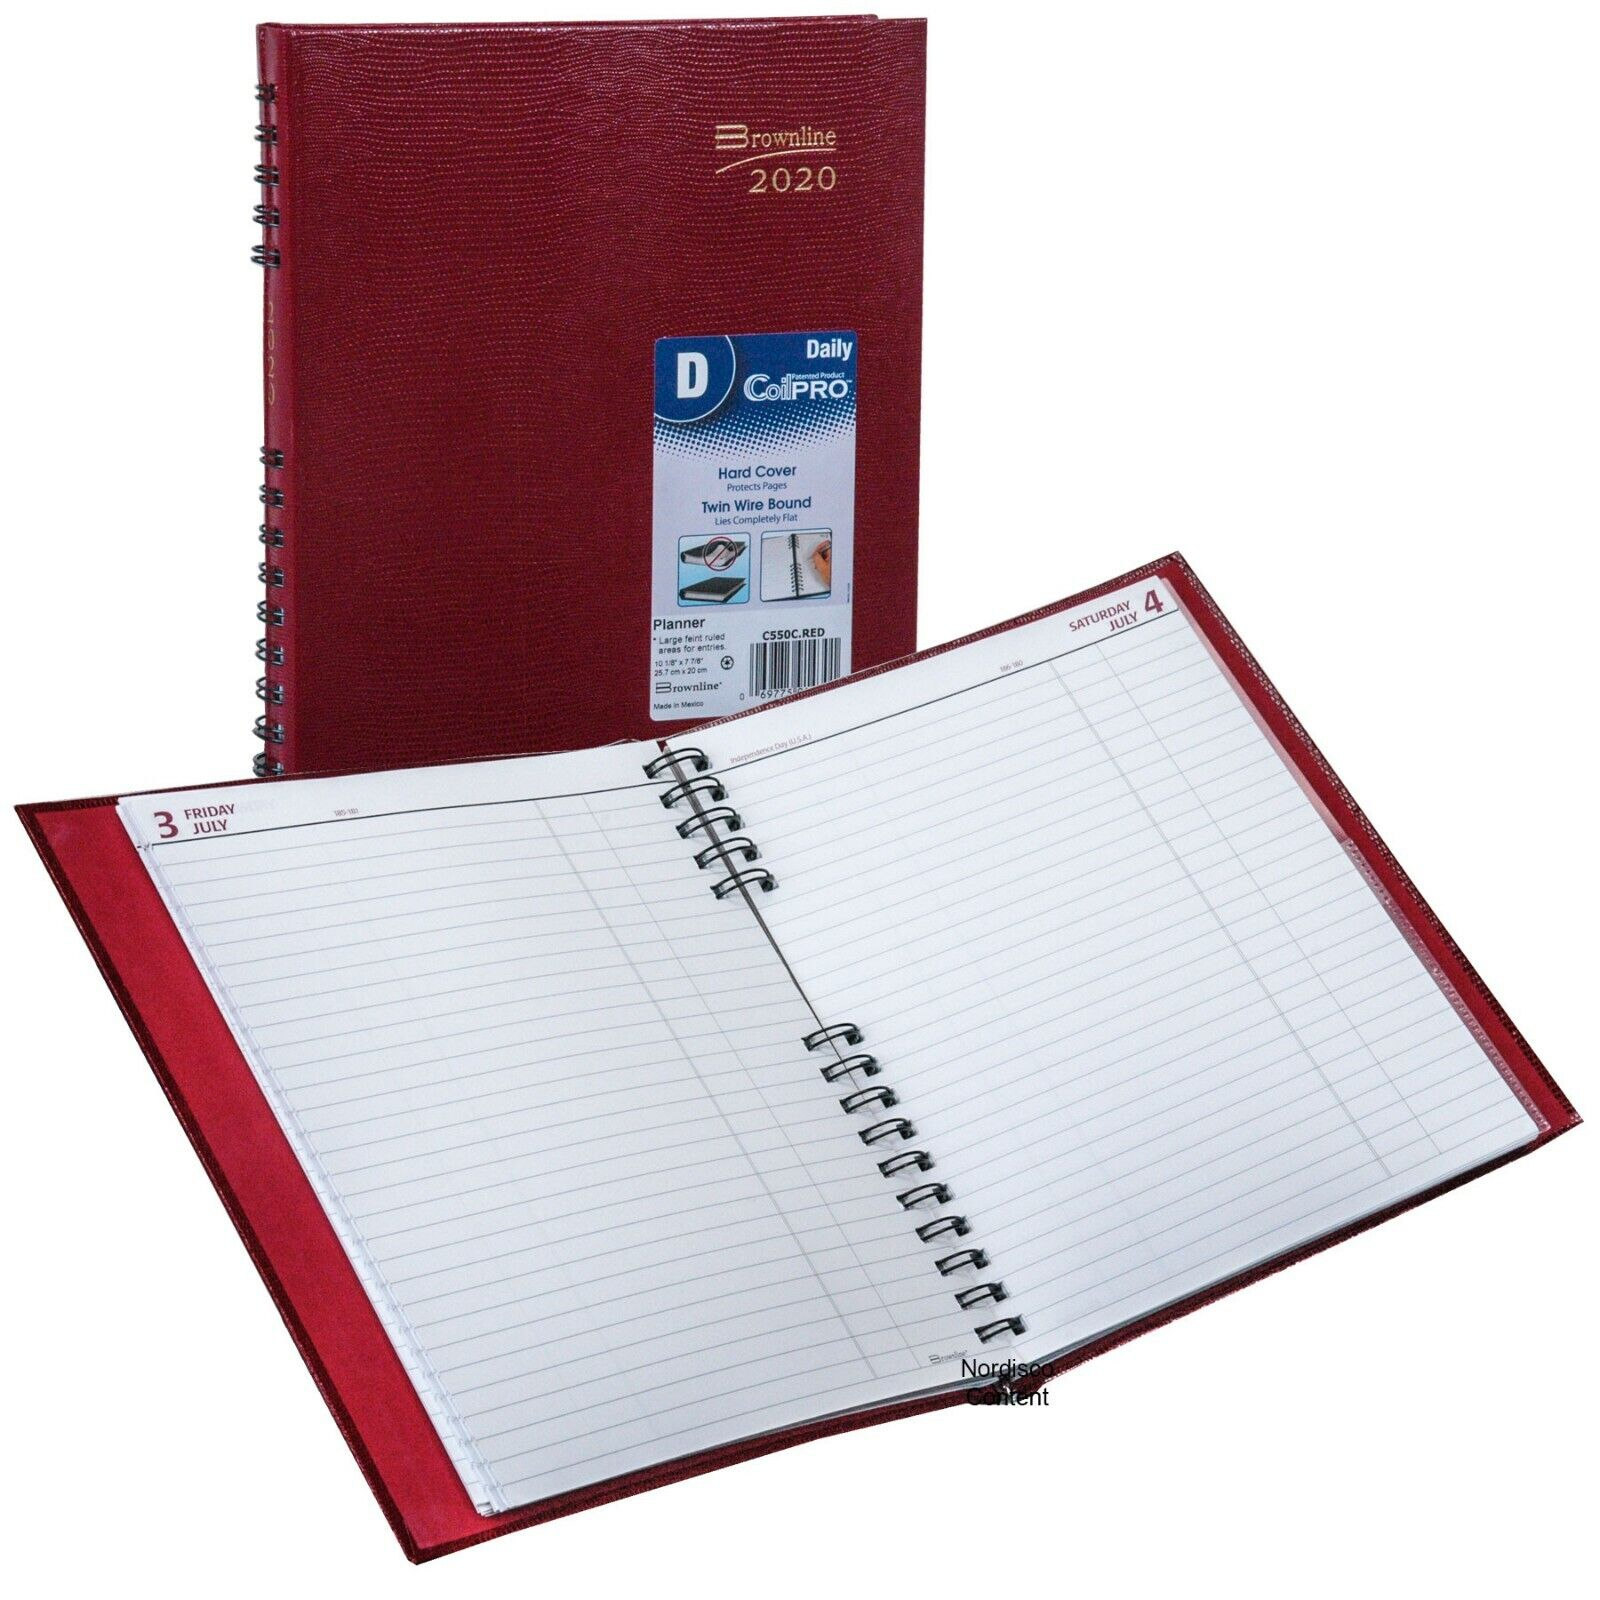 2020 Brownline C550C.RED CoilPRO Daily Planner, Hard Cover,